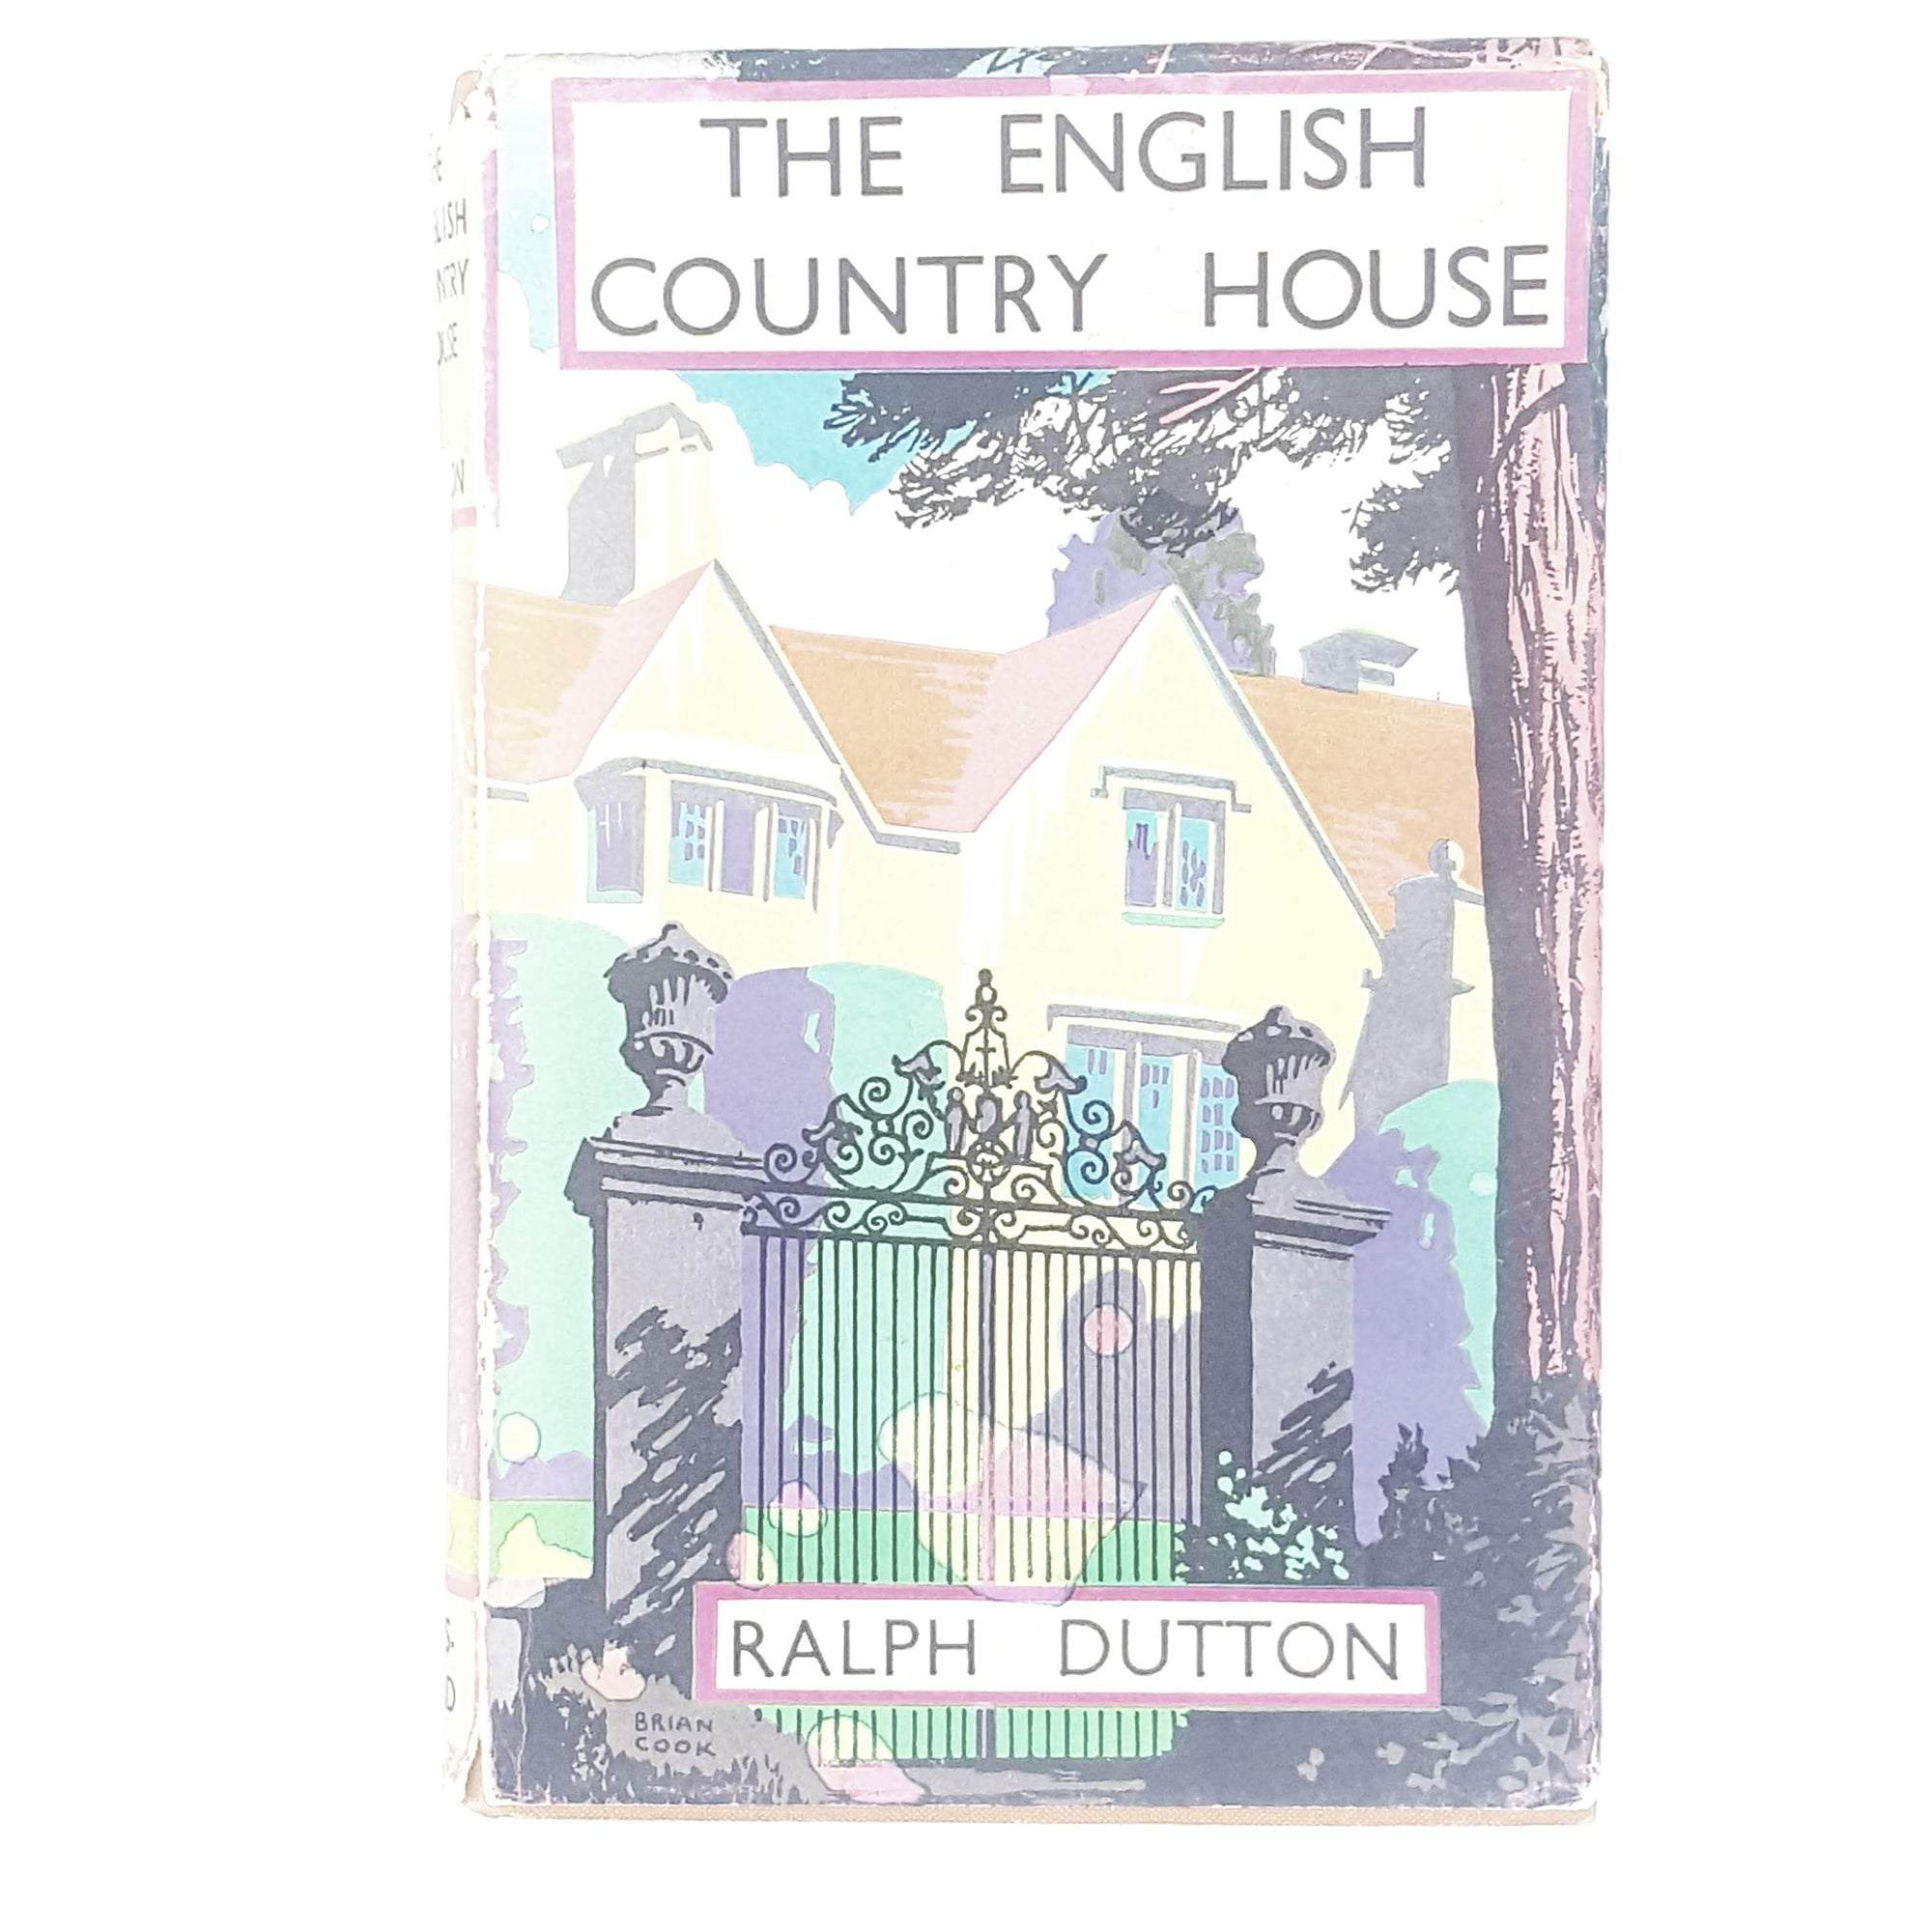 The English Country House by Ralph Dutton 1943 - 1944